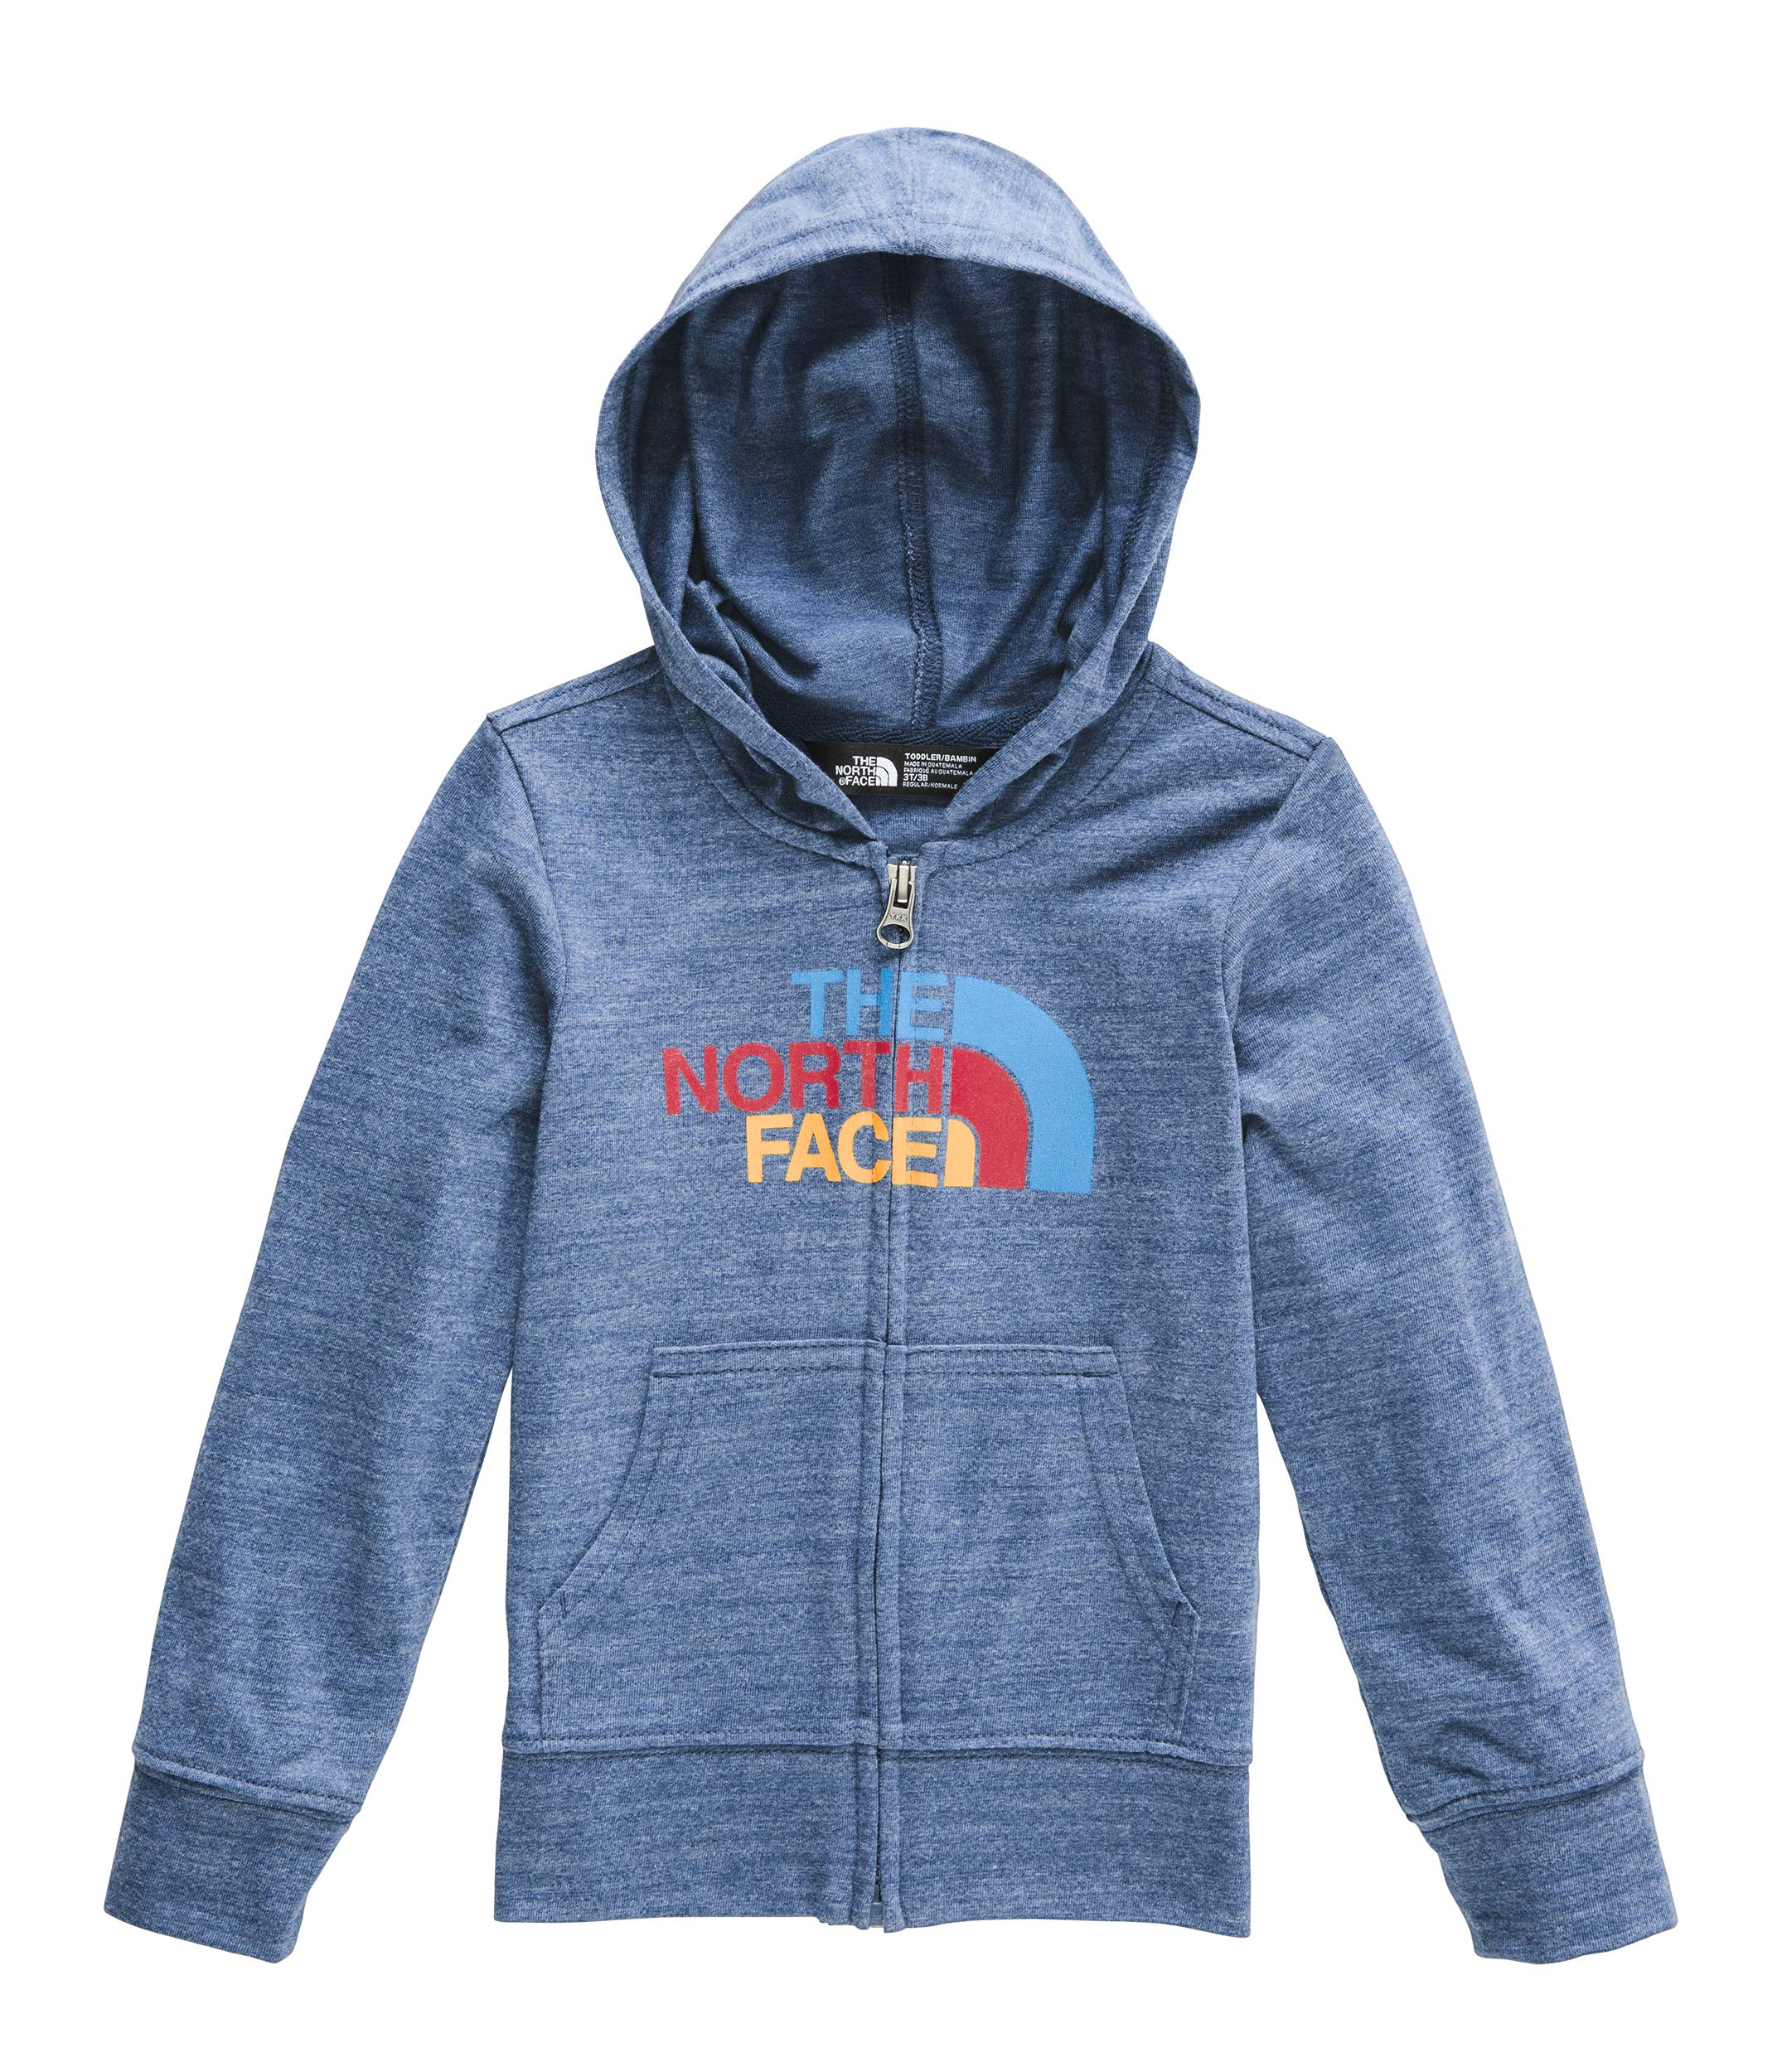 The North Face Kids Baby Boy's Tri-Blend Full Zip Hoodie (Toddler) Shady Blue Heather 4T